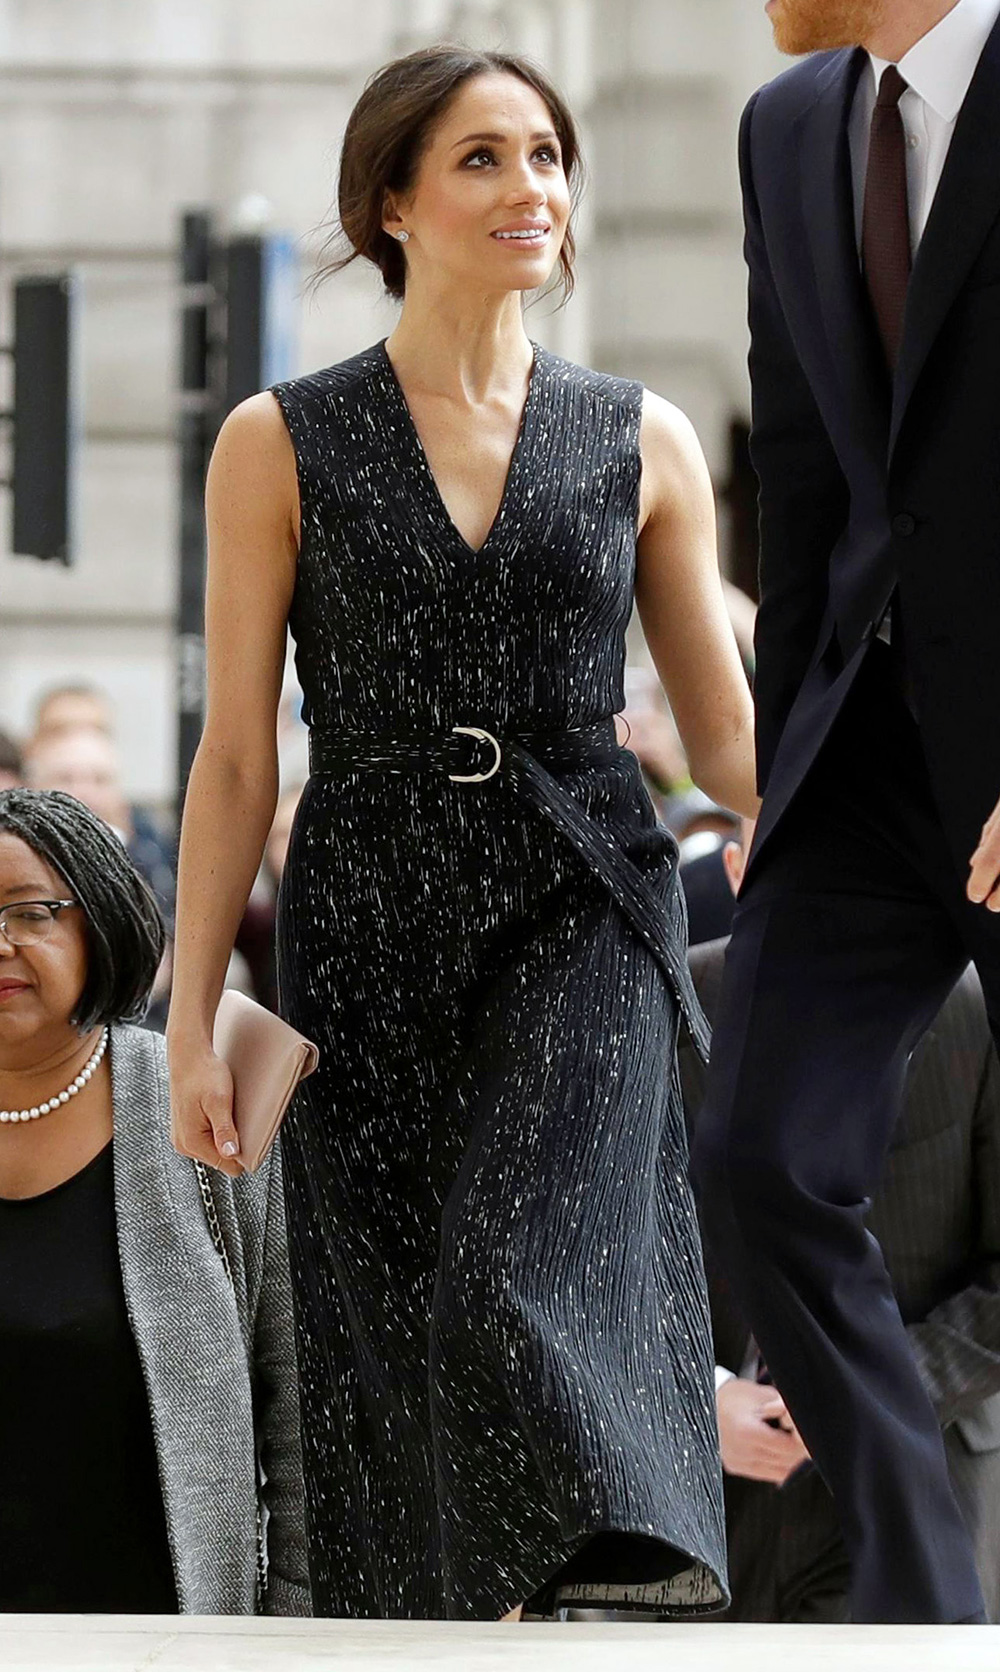 Meghan Markle at the 25th Anniversary Memorial Service to celebrate the life and legacy of Stephen Lawrence at St Martin-in-the-Fields on April 23, 2018 in London, England.